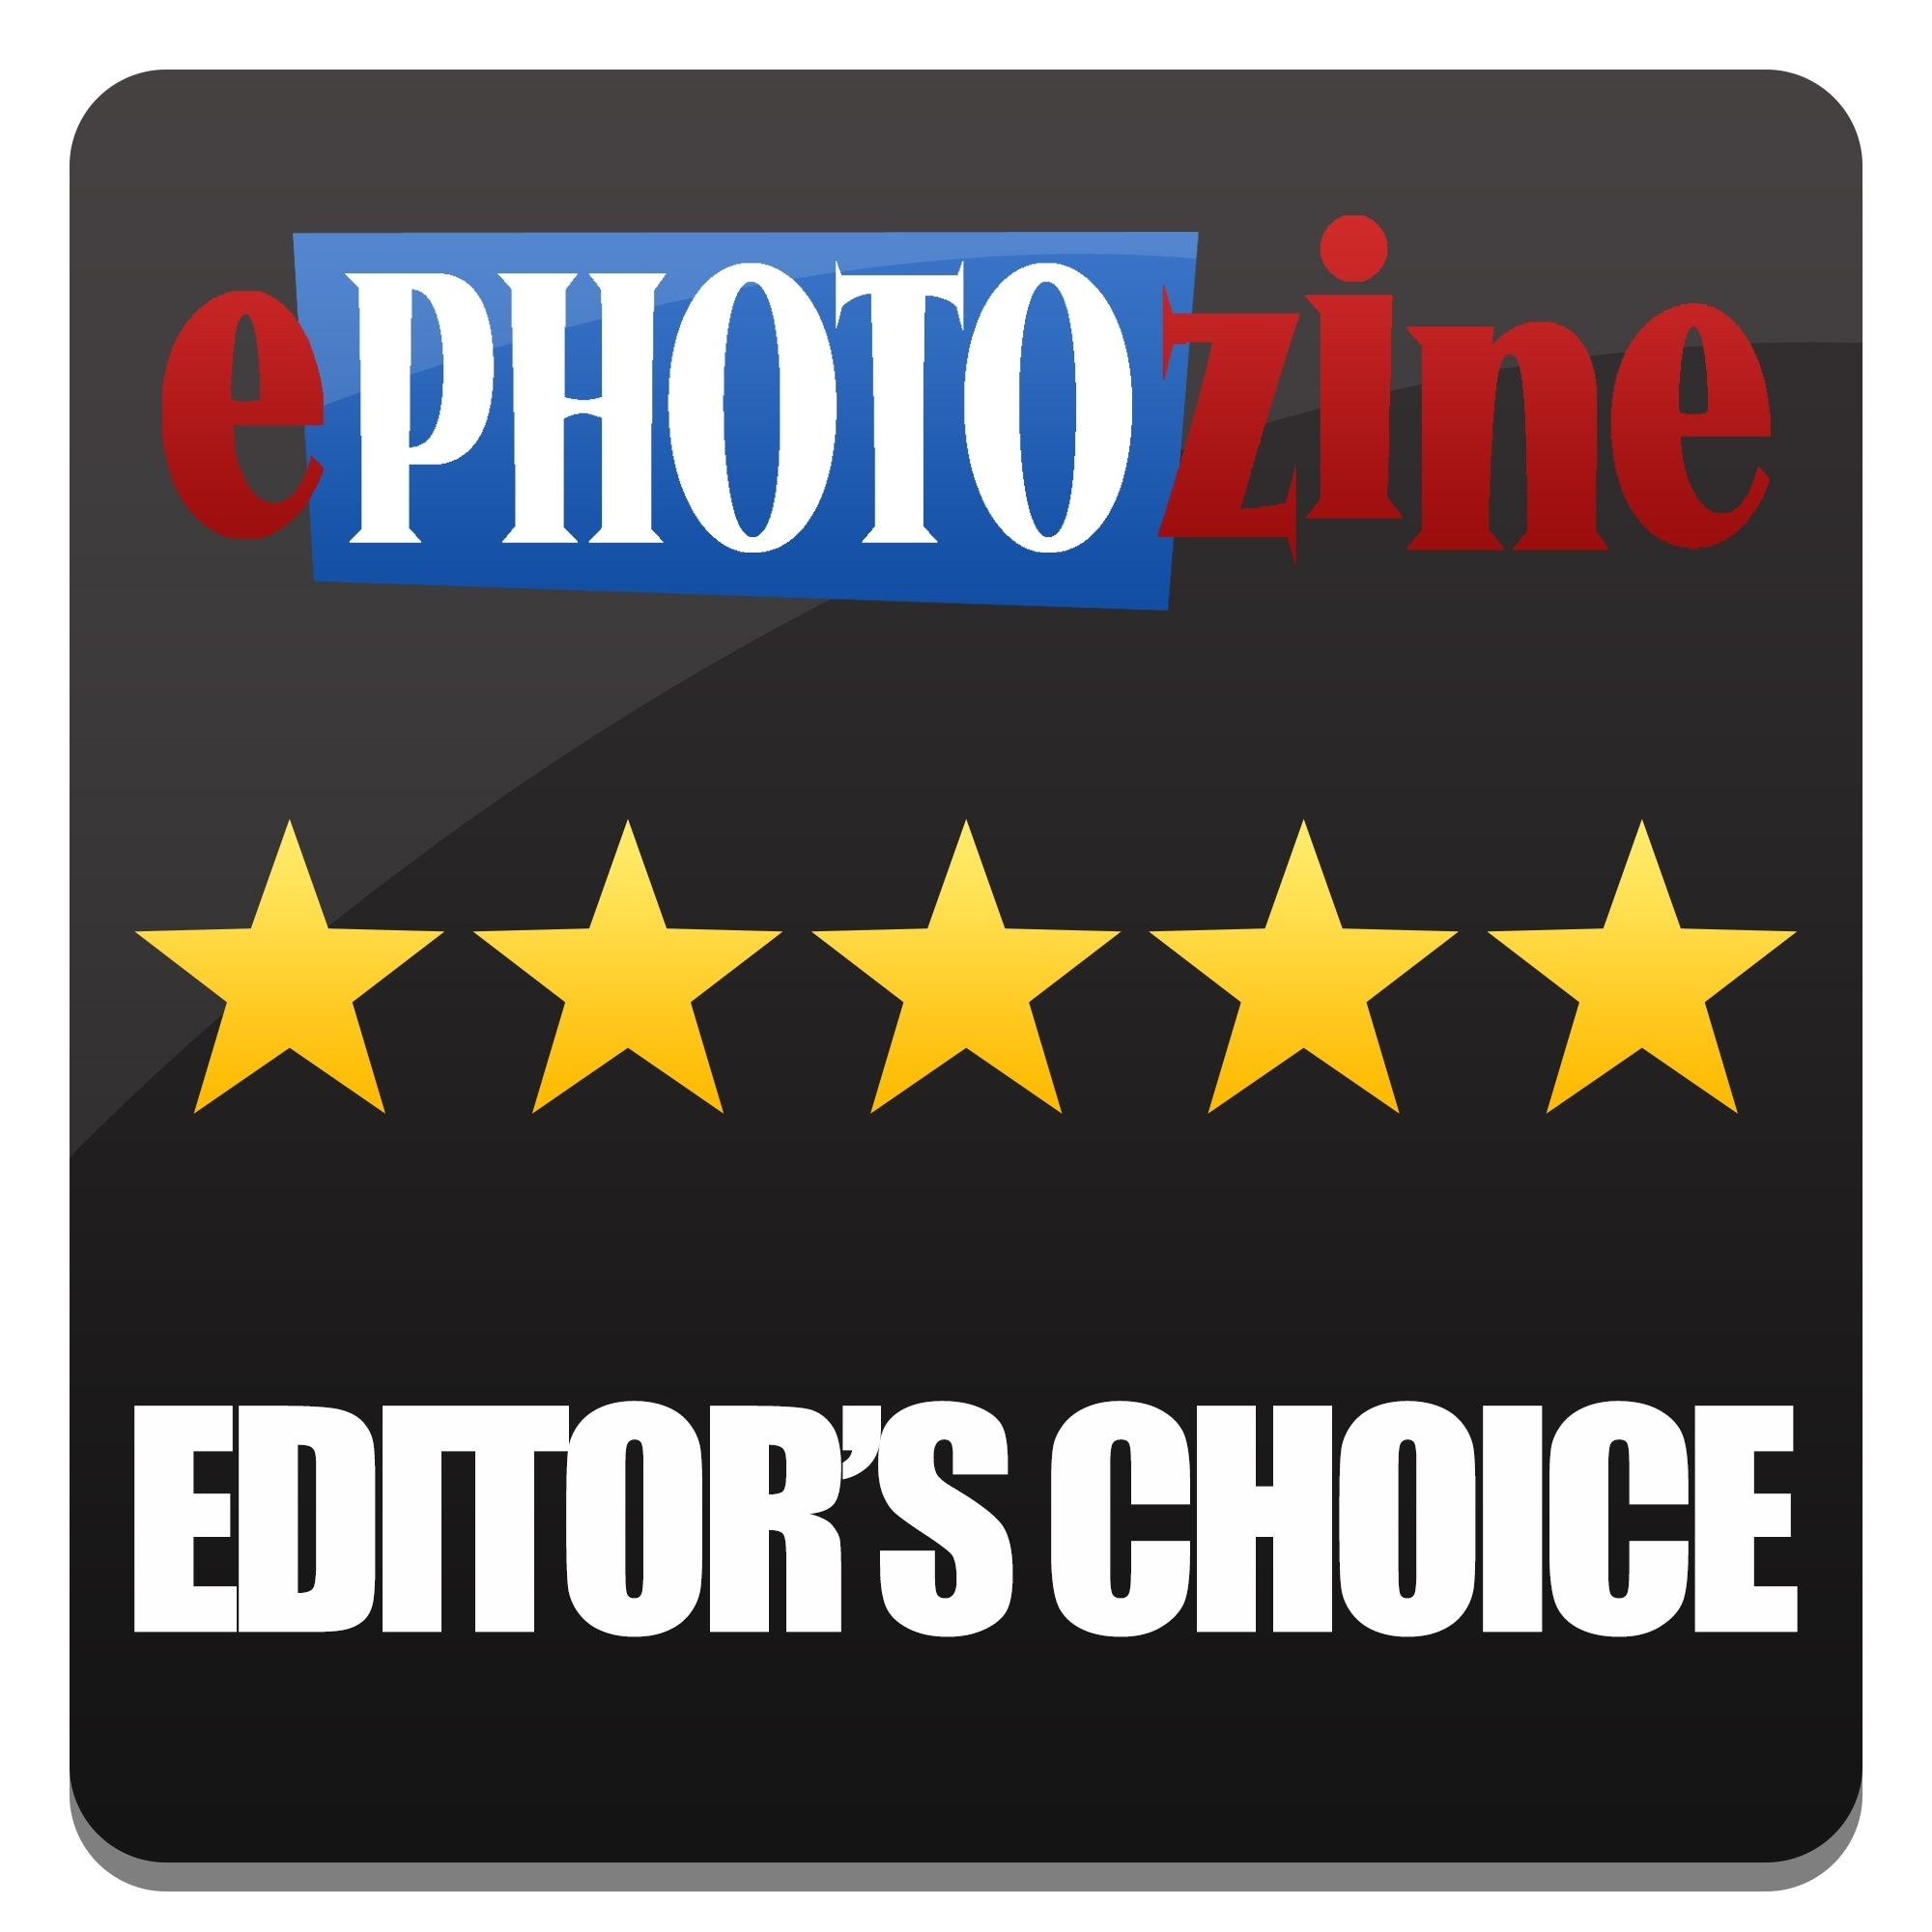 Ephotozine Editors Choice Award